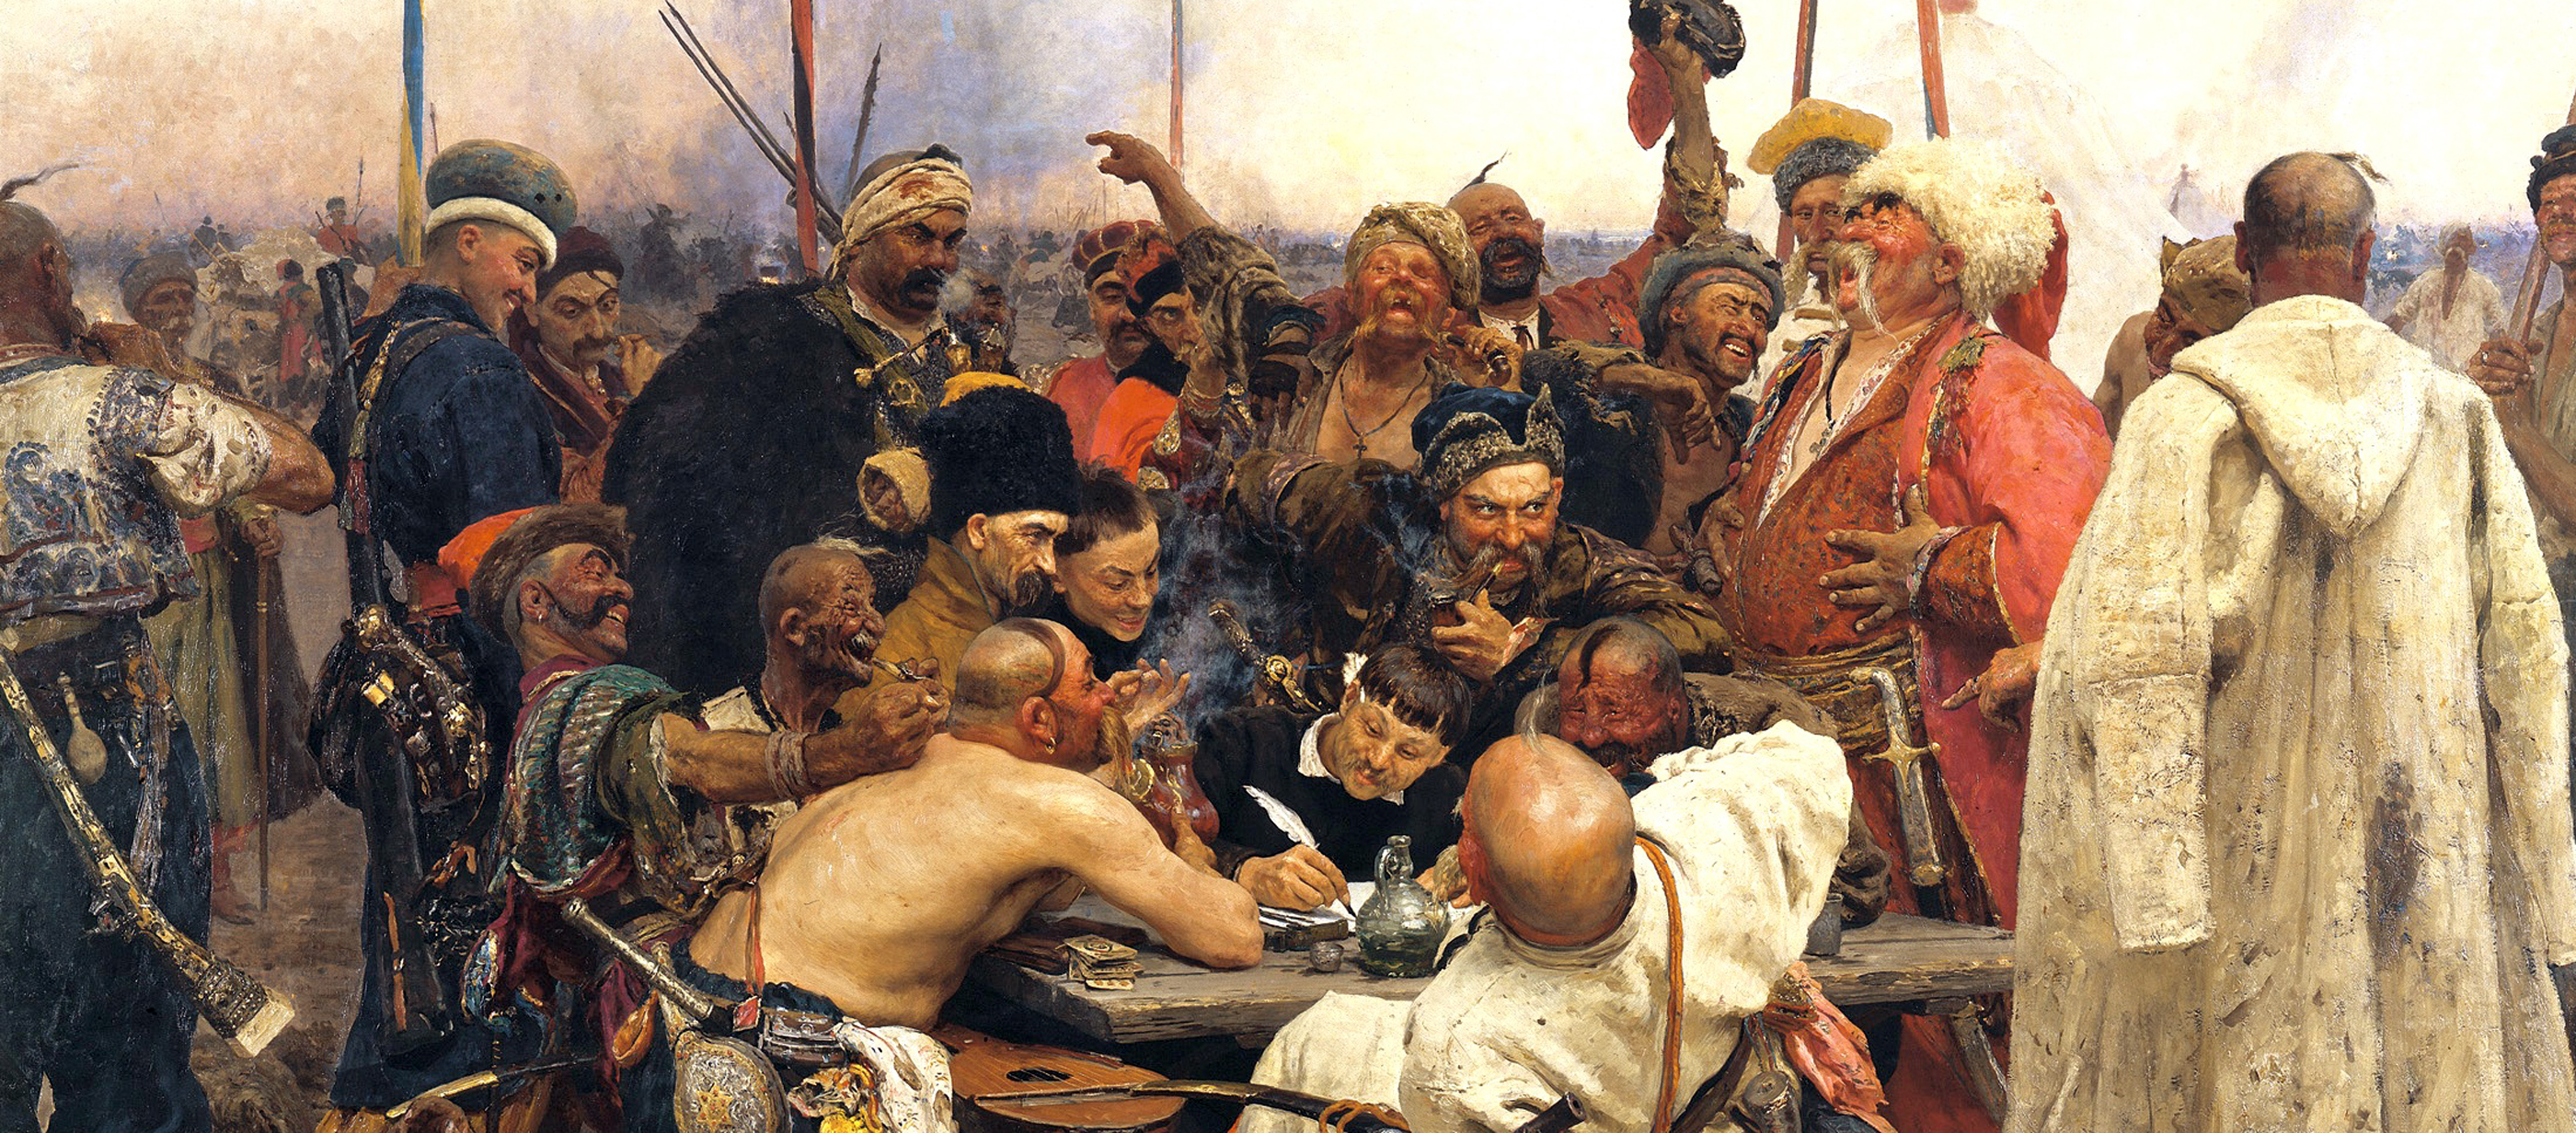 The Zaparozhye Cossacks Writing a Mocking Letter to the Turkish Sultan, by Ilya Repin, c. 1880.